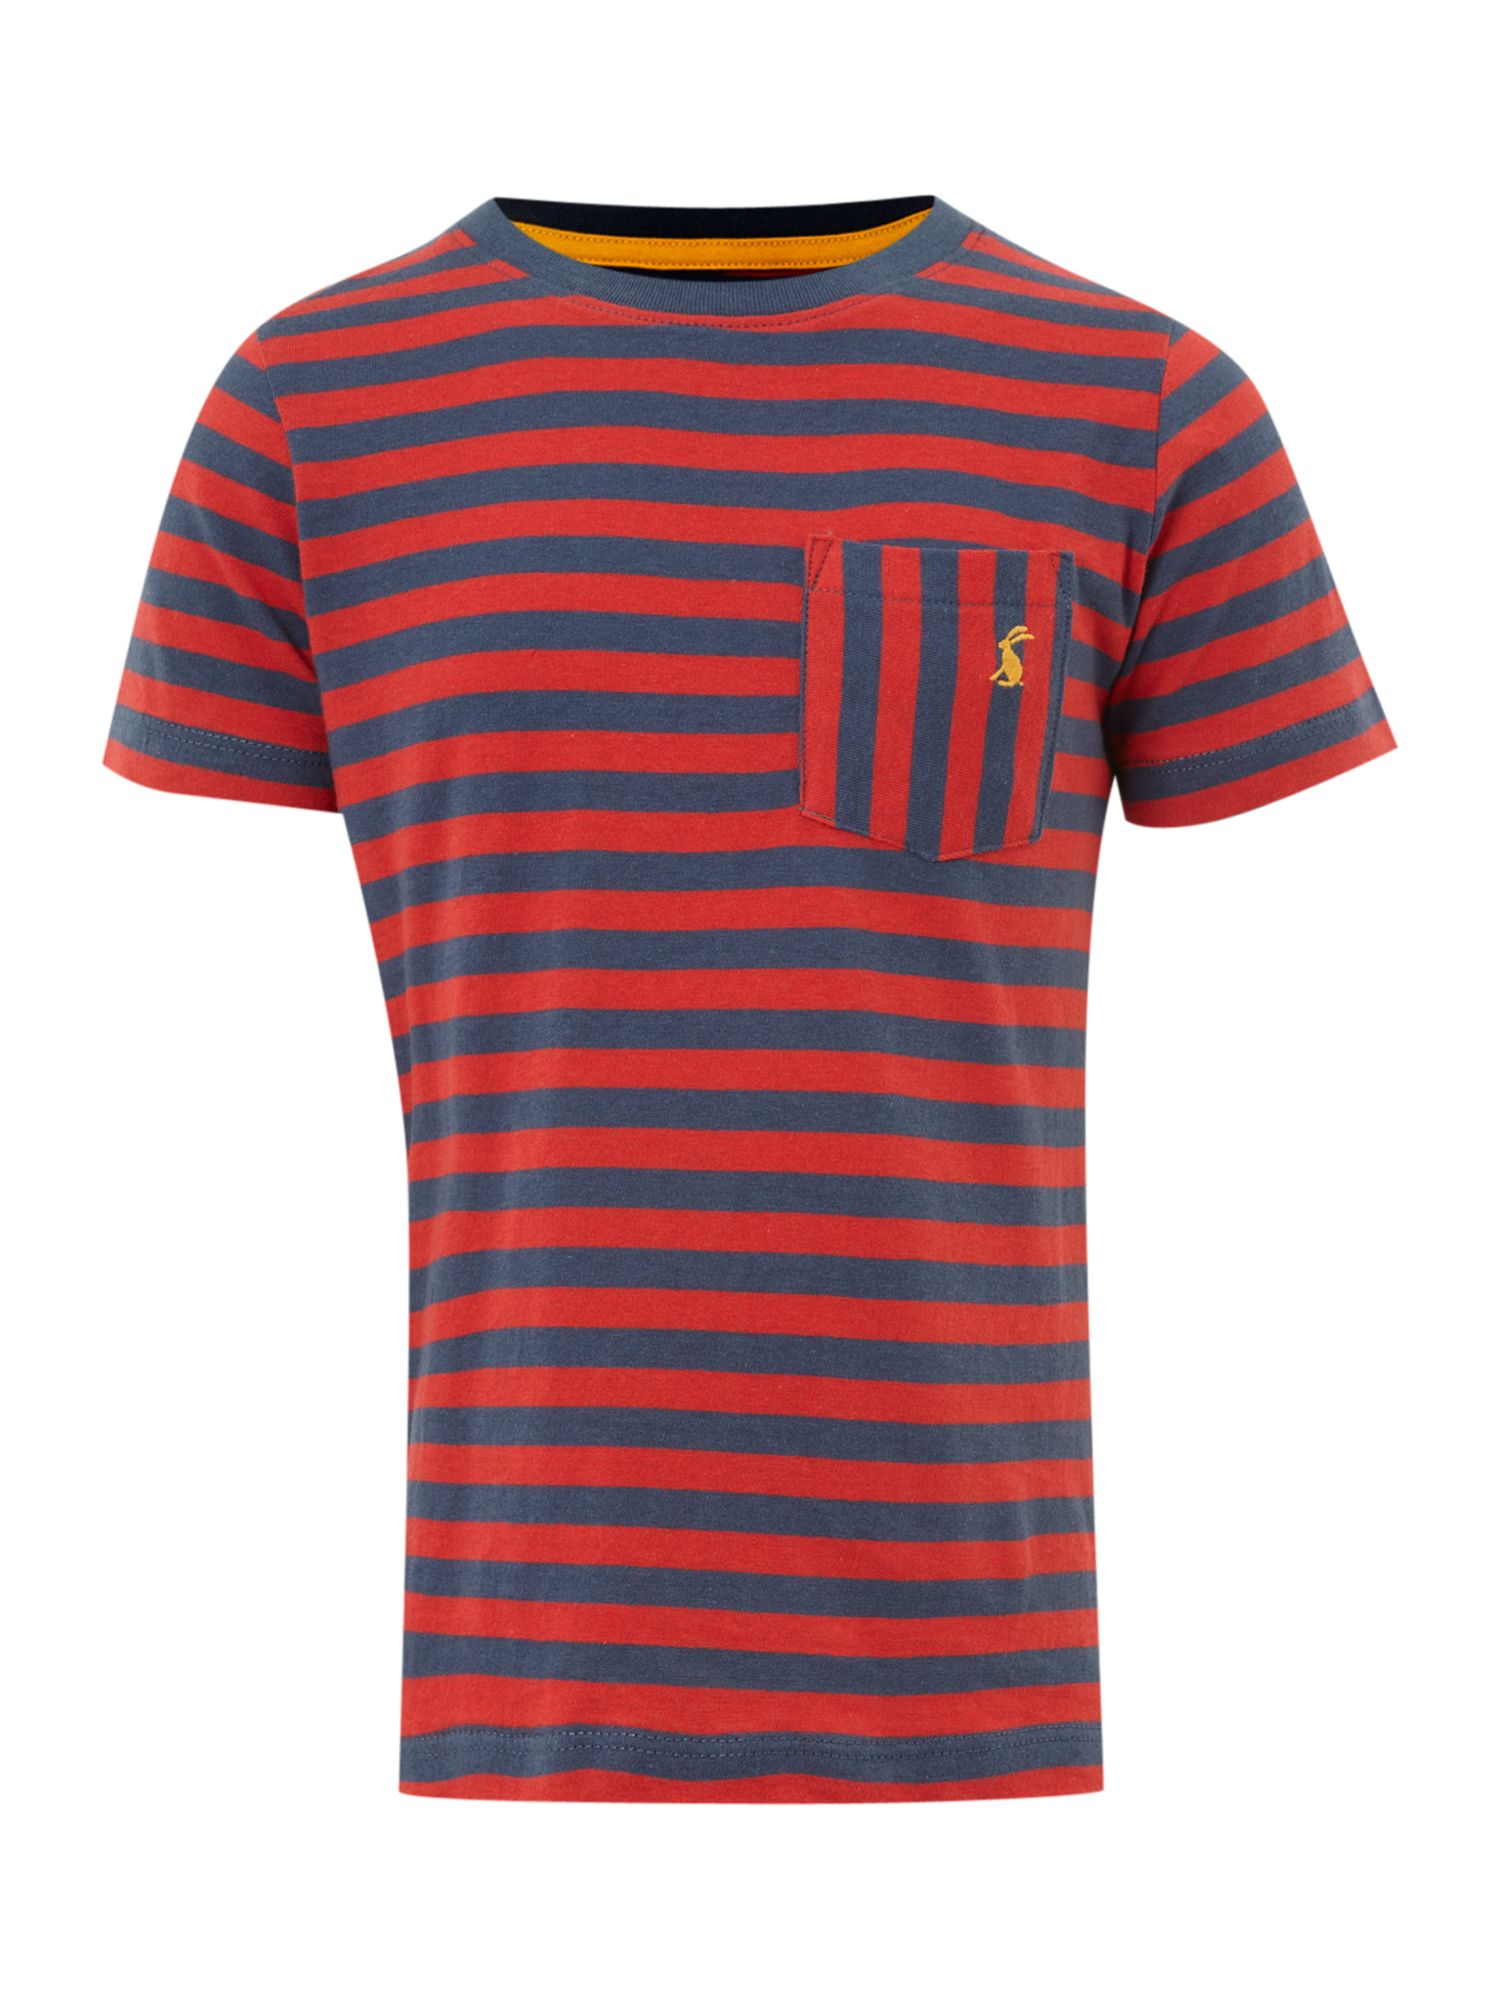 Little Joule Short-sleeved stripe t-shirt, Red product image